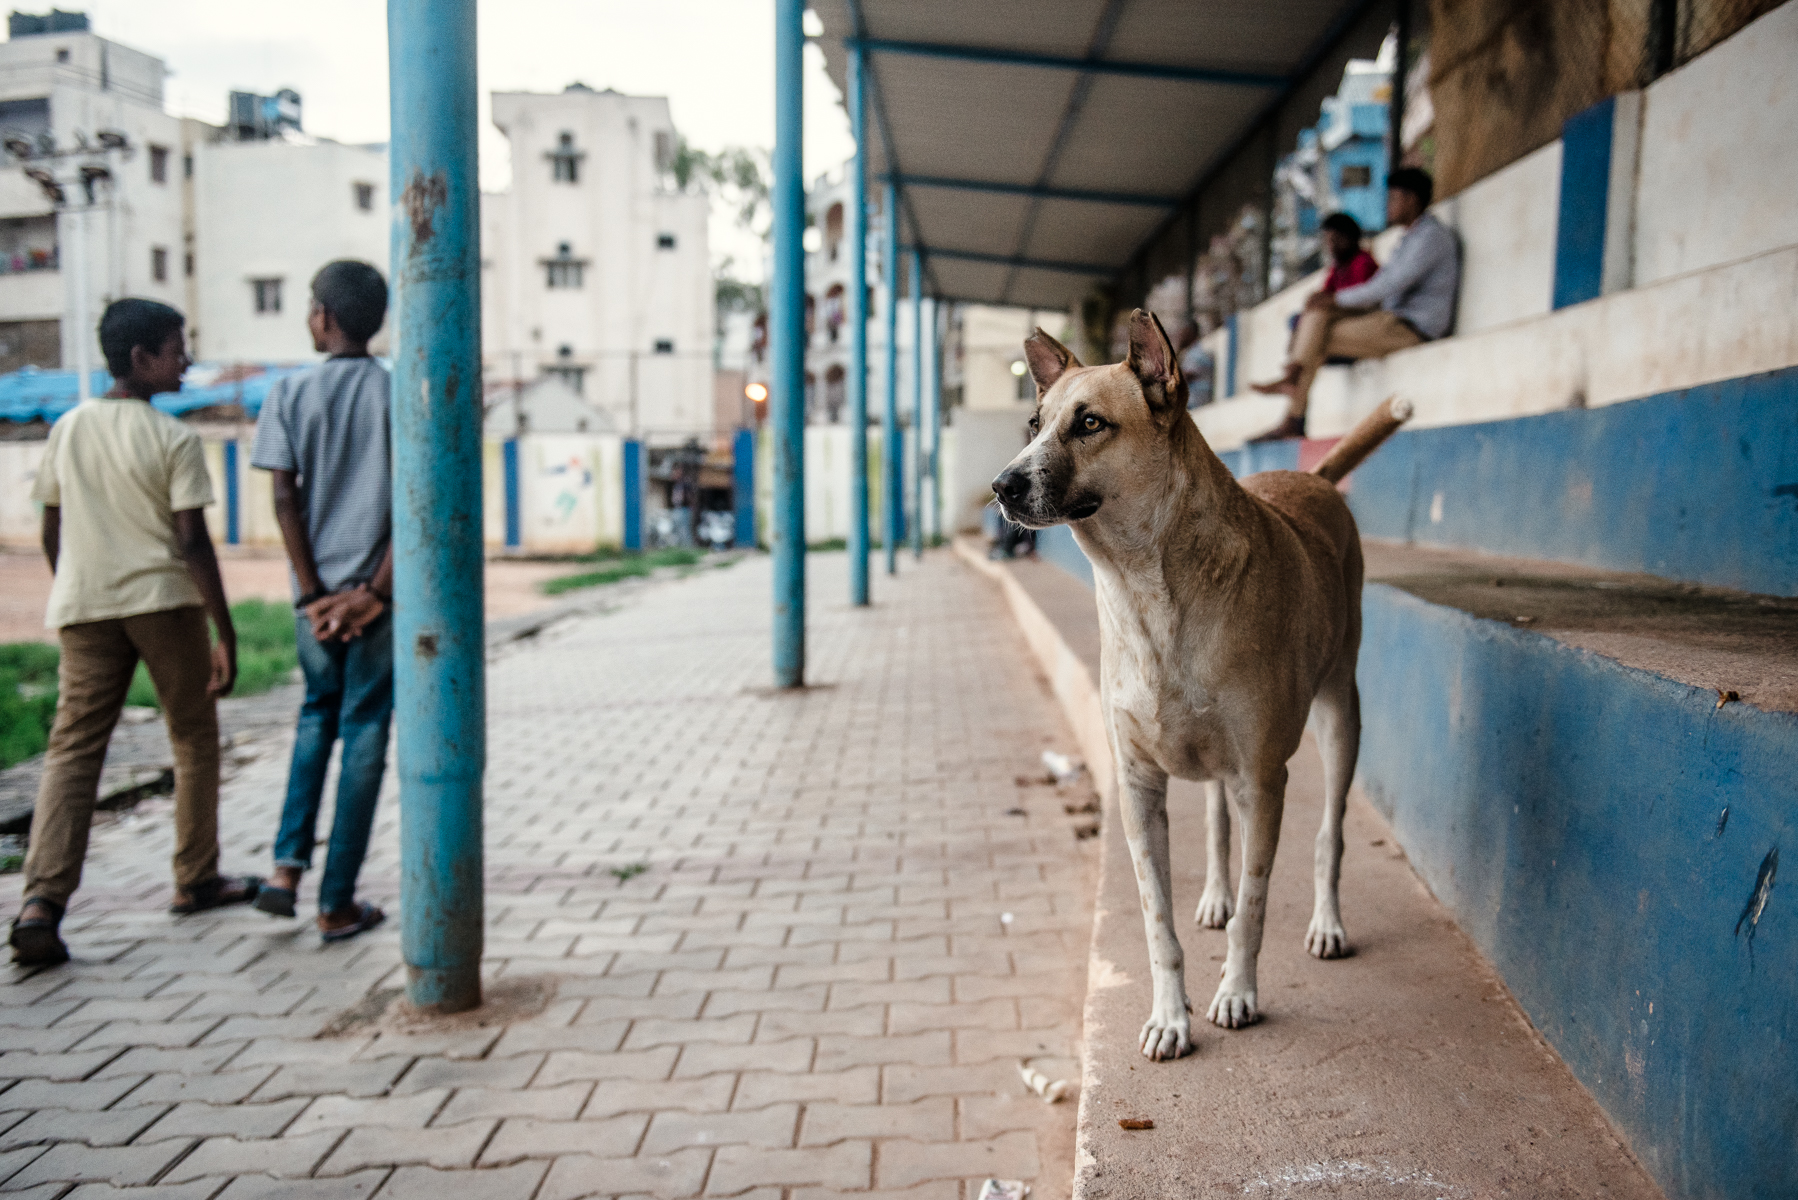 PL_India_Day1_Alex_Wallace_Photography_668.jpg